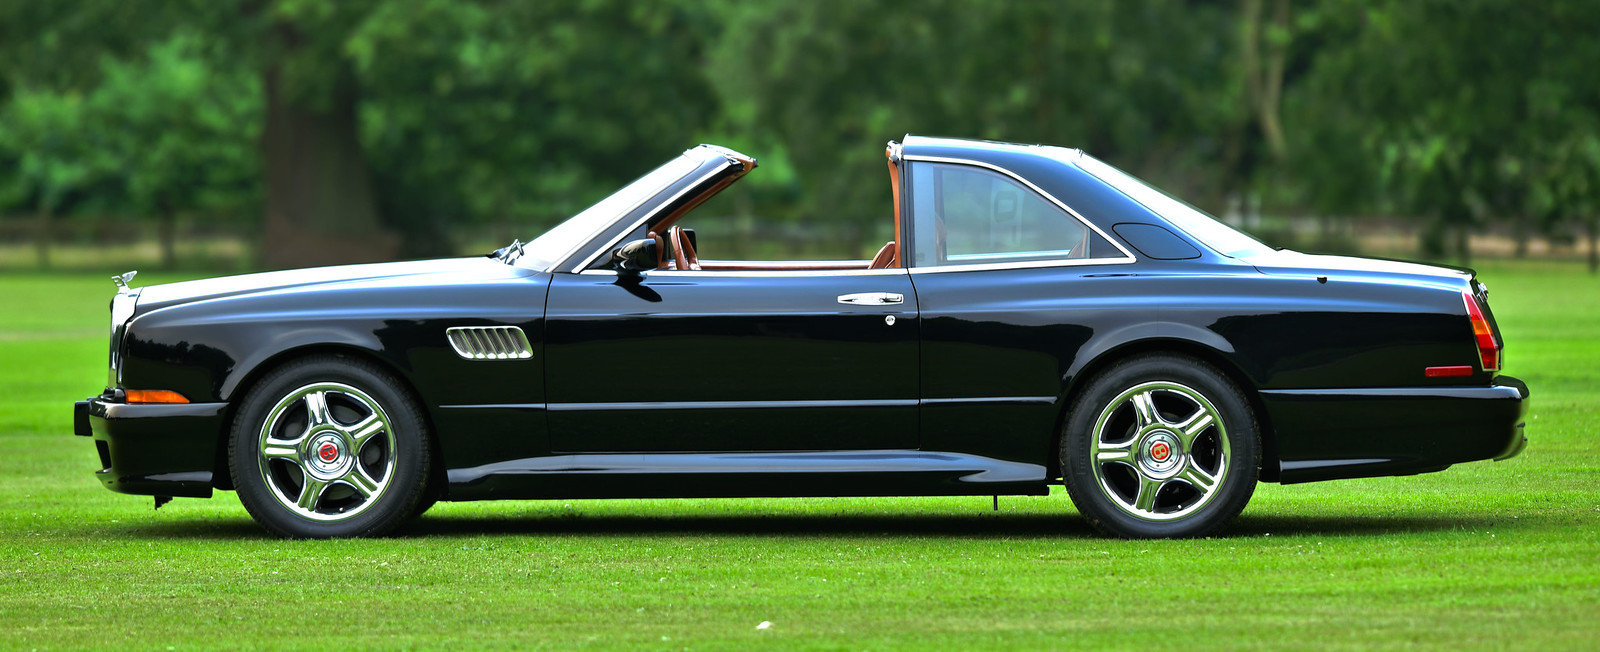 1999 Bentley Continental Sedanca Coupe SC LHD For Sale (picture 2 of 6)